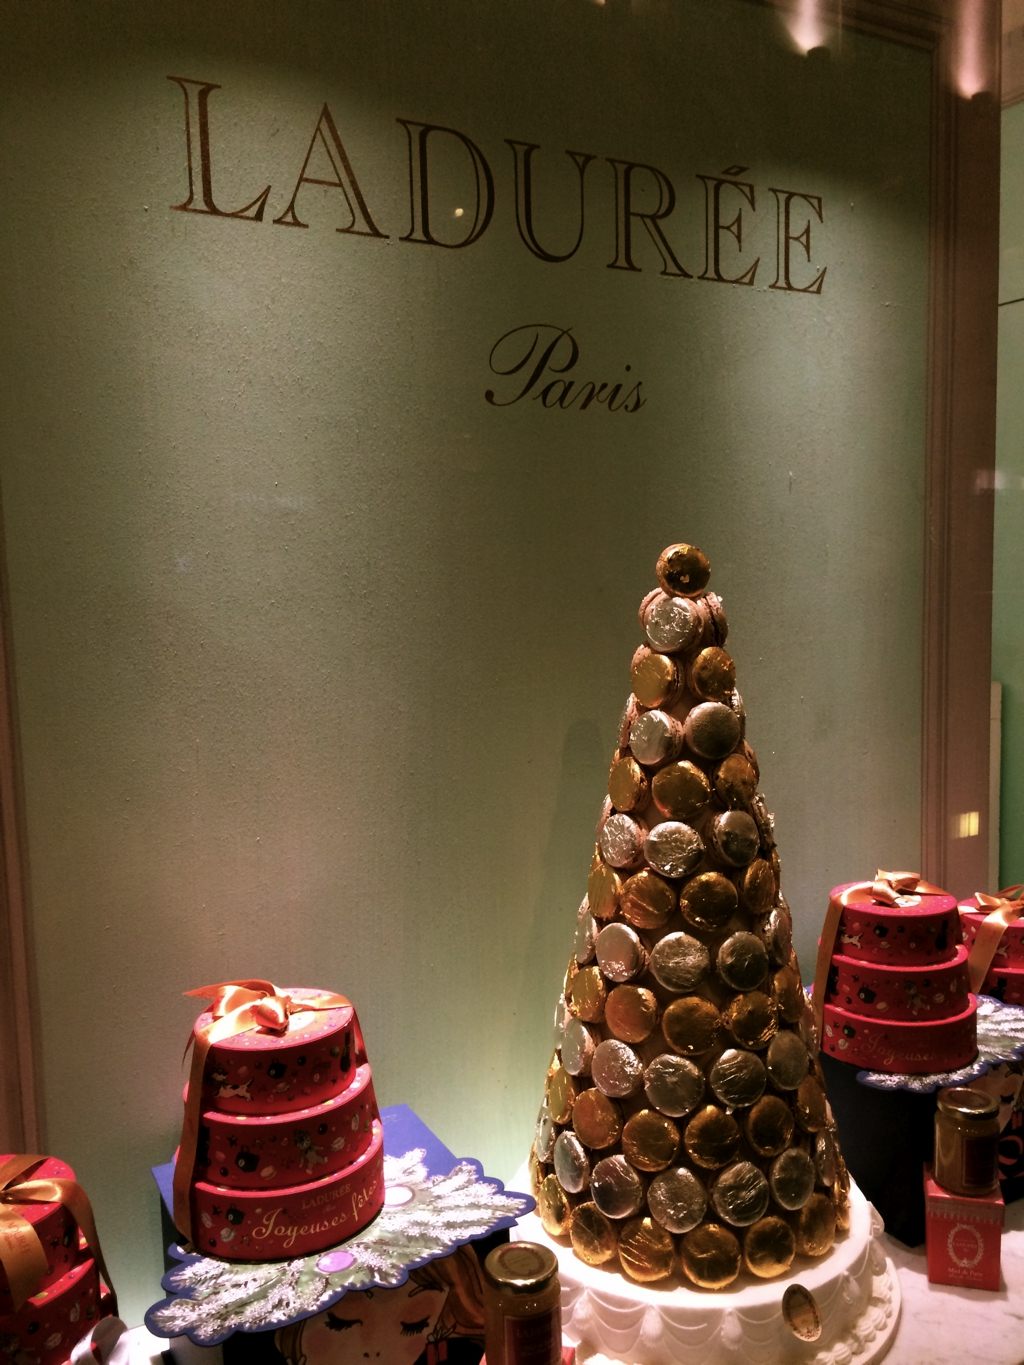 Ladurée, Paris. By Packing my Suitcase.